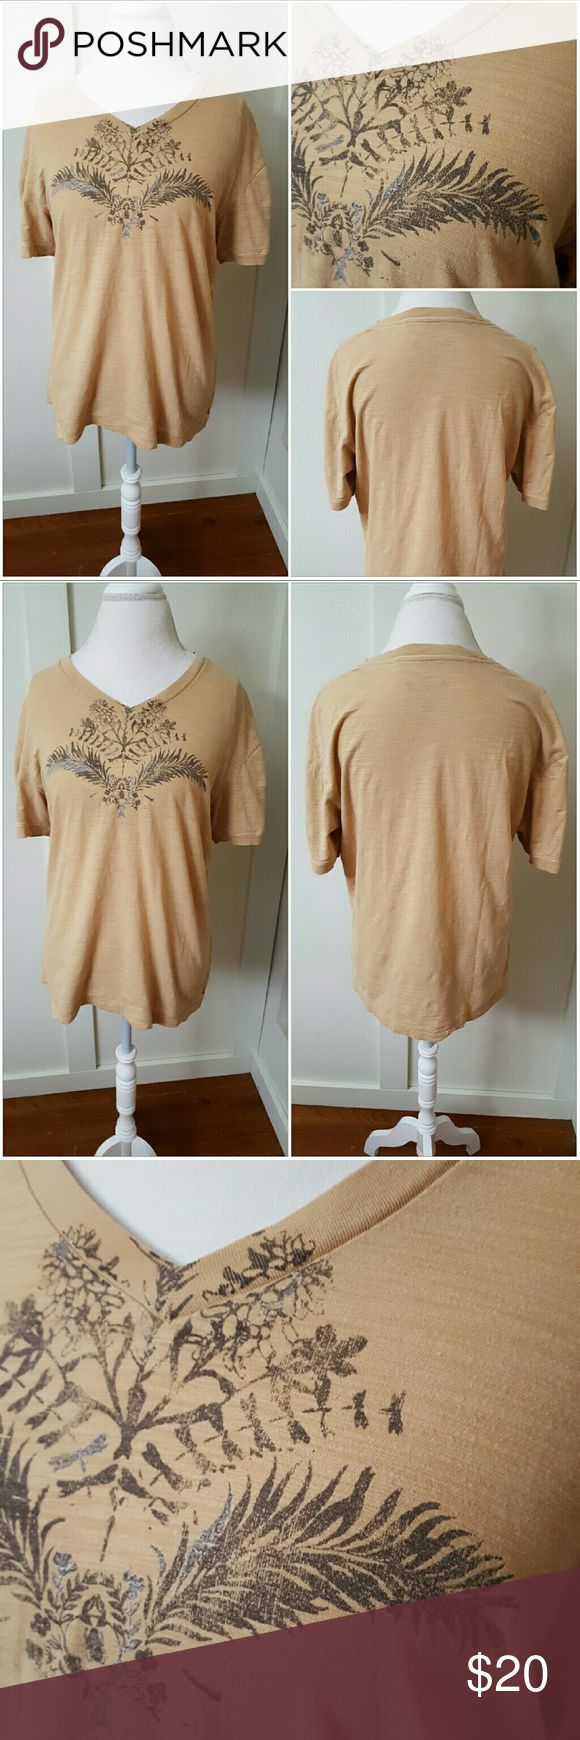 Guess Jeans Vintage 1981 Large Beige Tee Guess Jeans Vintage 1981 large beige tee. V-neck. Short sleeves. Has the date 2006 on it as well as 1981. Pre-owned and in good condition. 100% Cotton Guess Tops Tees - Short Sleeve